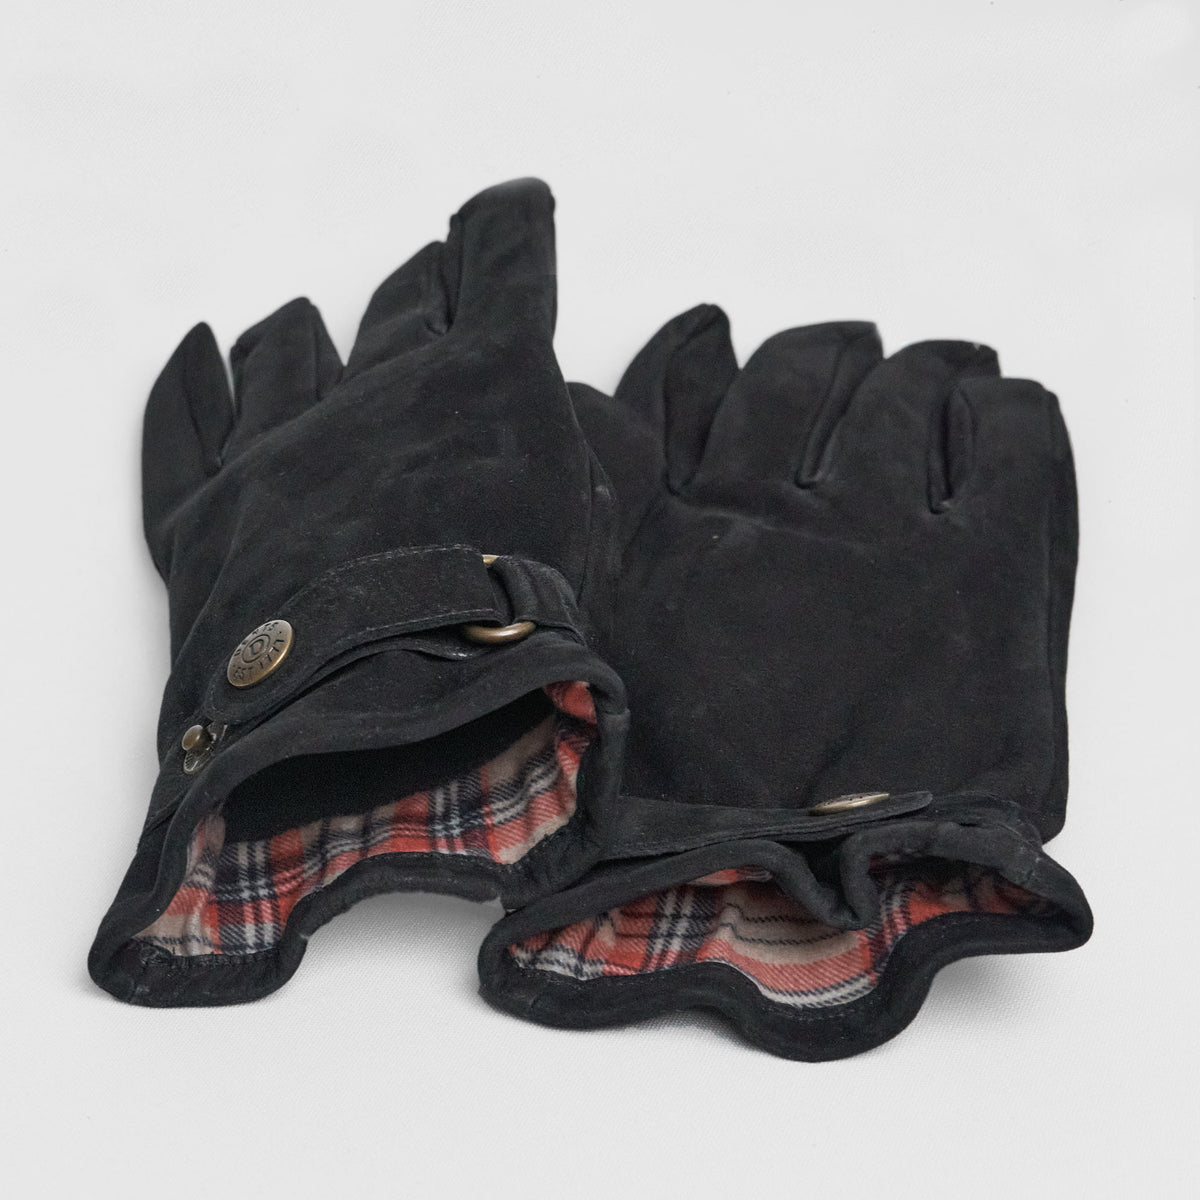 Western  Riding Style Work Gloves